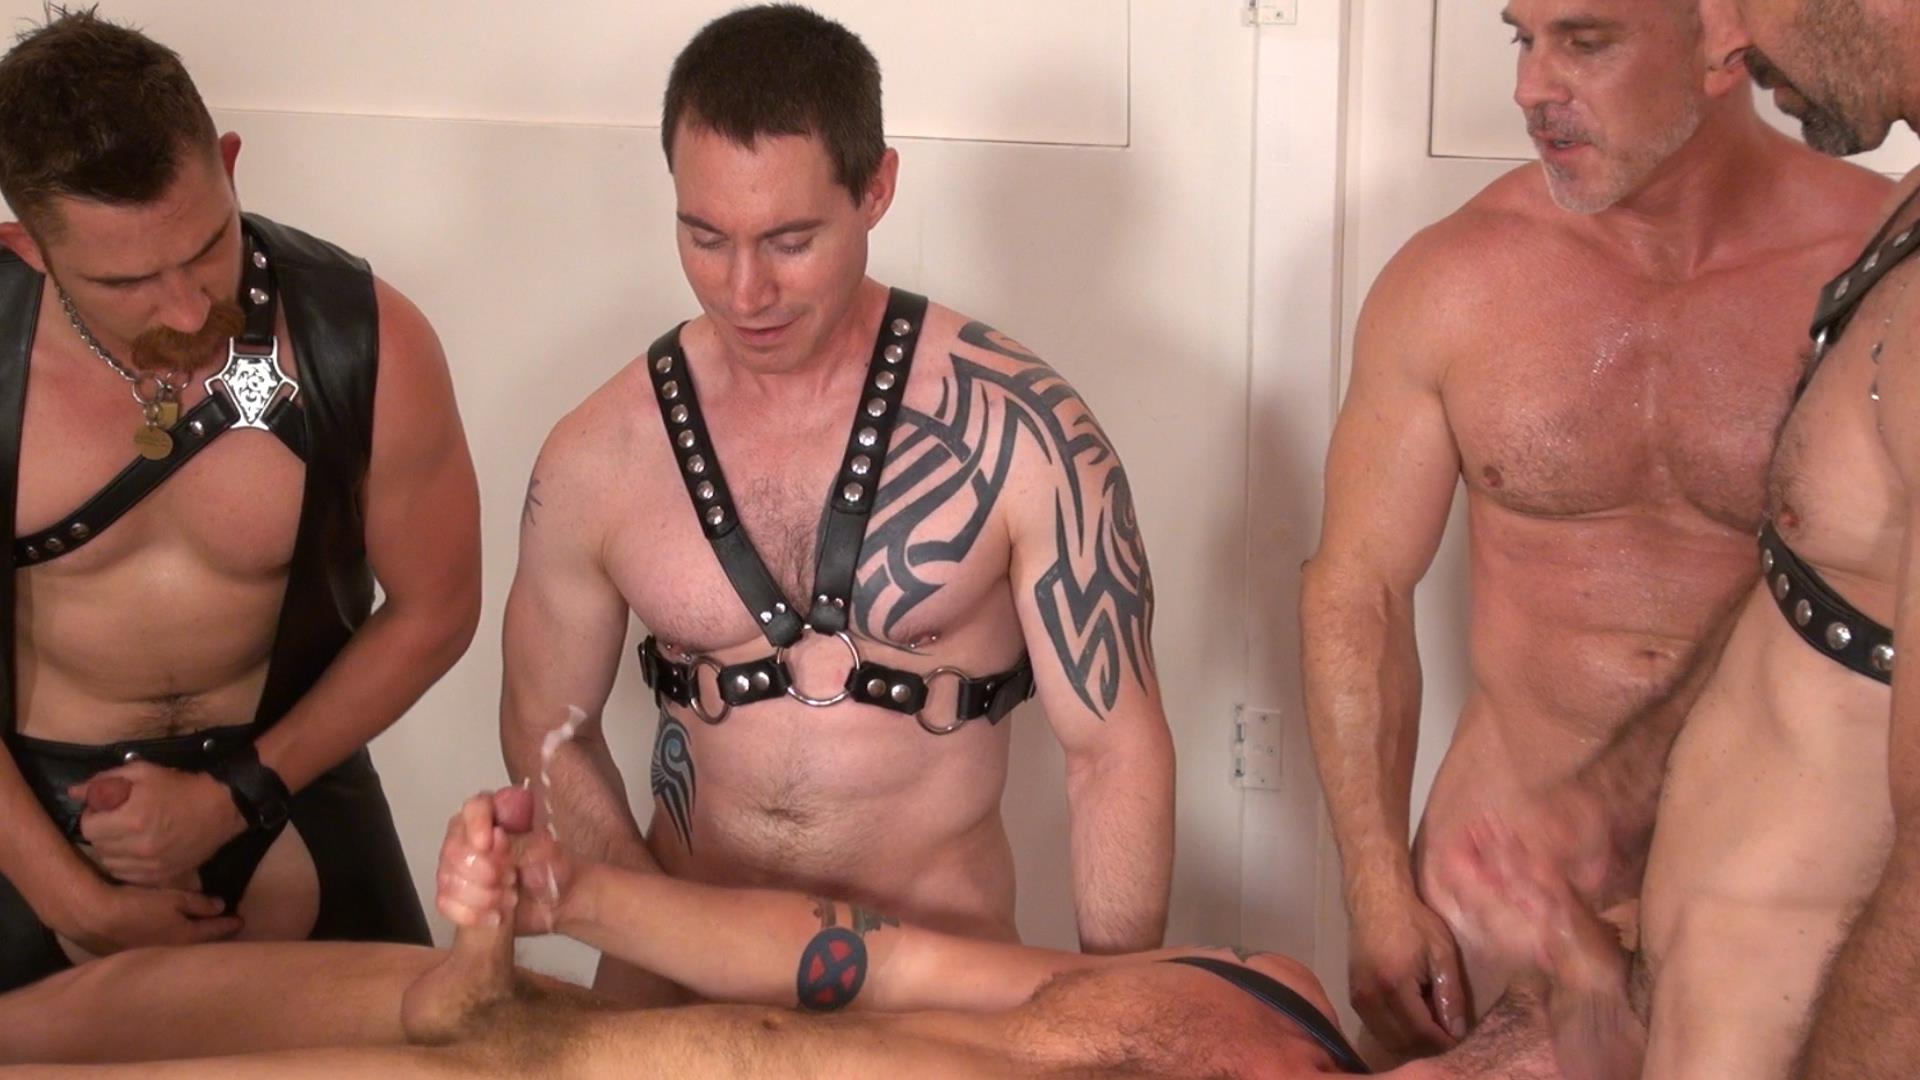 Raw-and-Rough-Jason-Mitchell-Steven-Richards-Sam-Dixon-Blue-Bailey-Dayton-OConnor-Jose-del-Toro-Bareback-Bathhouse-Amateur-Gay-Porn-06 Blue Bailey Getting Fucked Bareback By 5 Guys At A Bathhouse